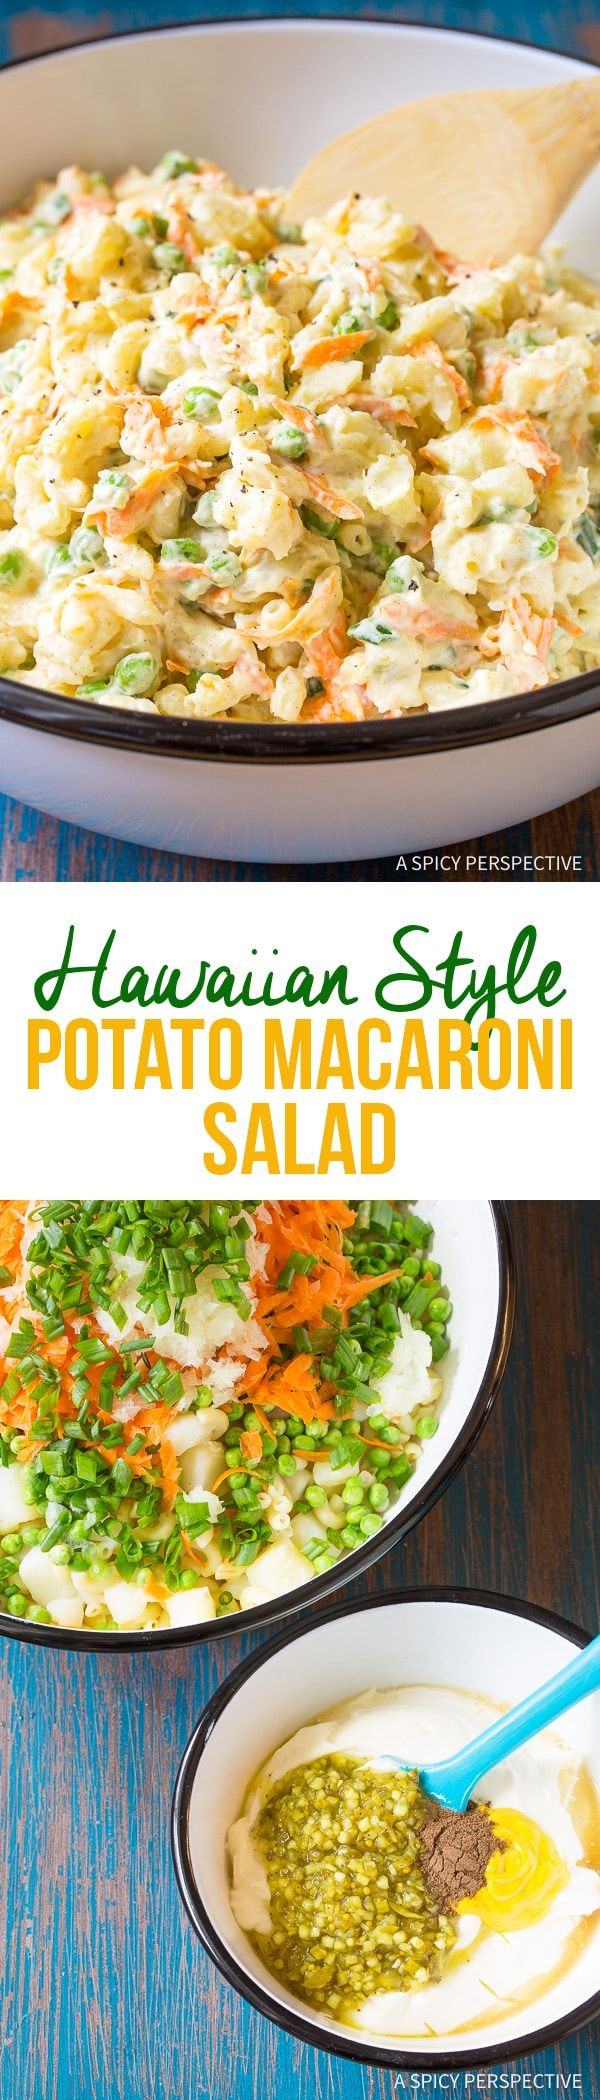 Hawaiian Style Potato Macaroni Salad - A Hawaiian plate lunch special! Creamy macaroni salad with tender chunks of potato, sweet peas, and carrots mixed in. via @spicyperspectiv